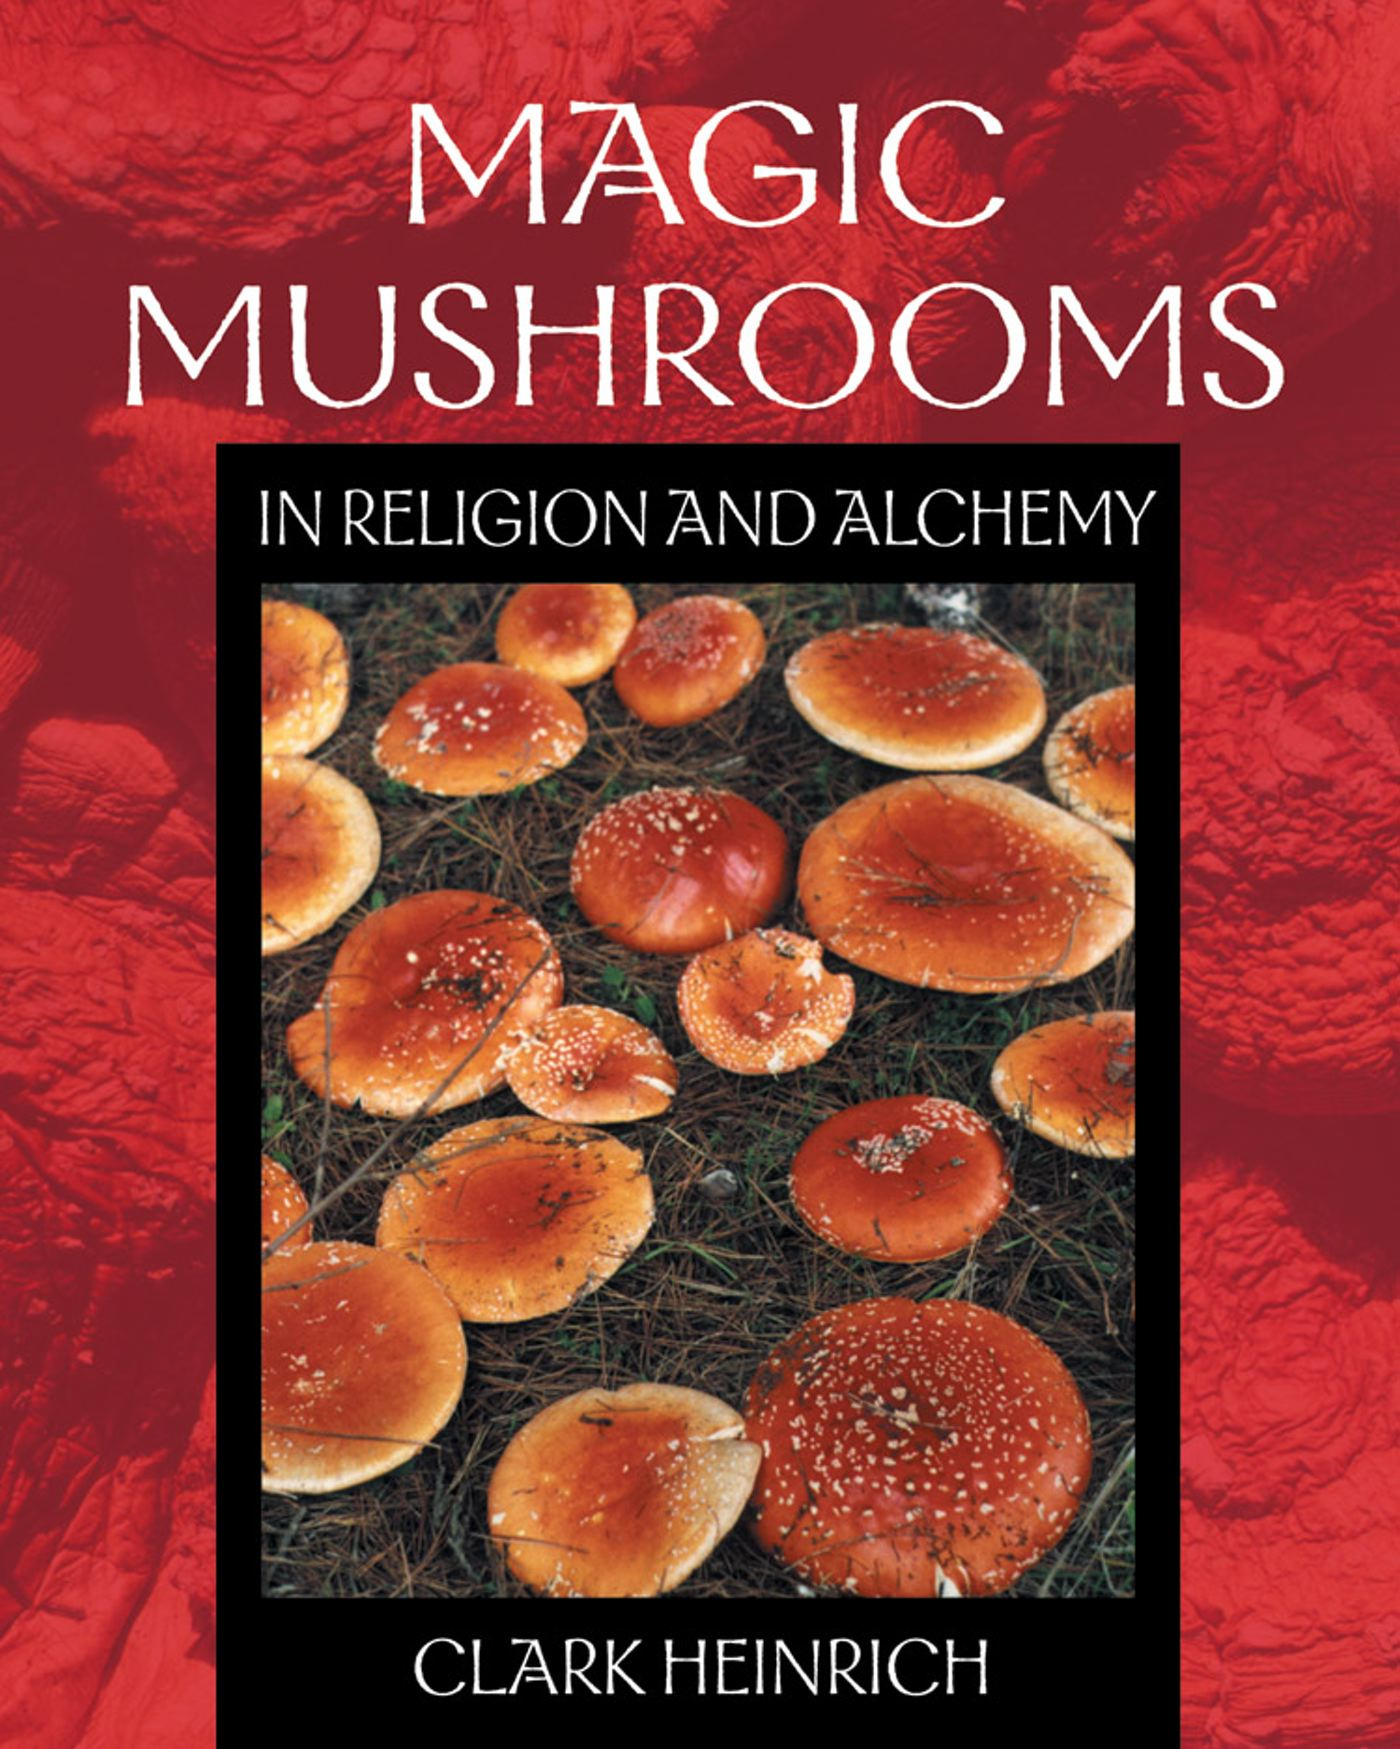 Magic-mushrooms-in-religion-and-alchemy-9780892819973_hr